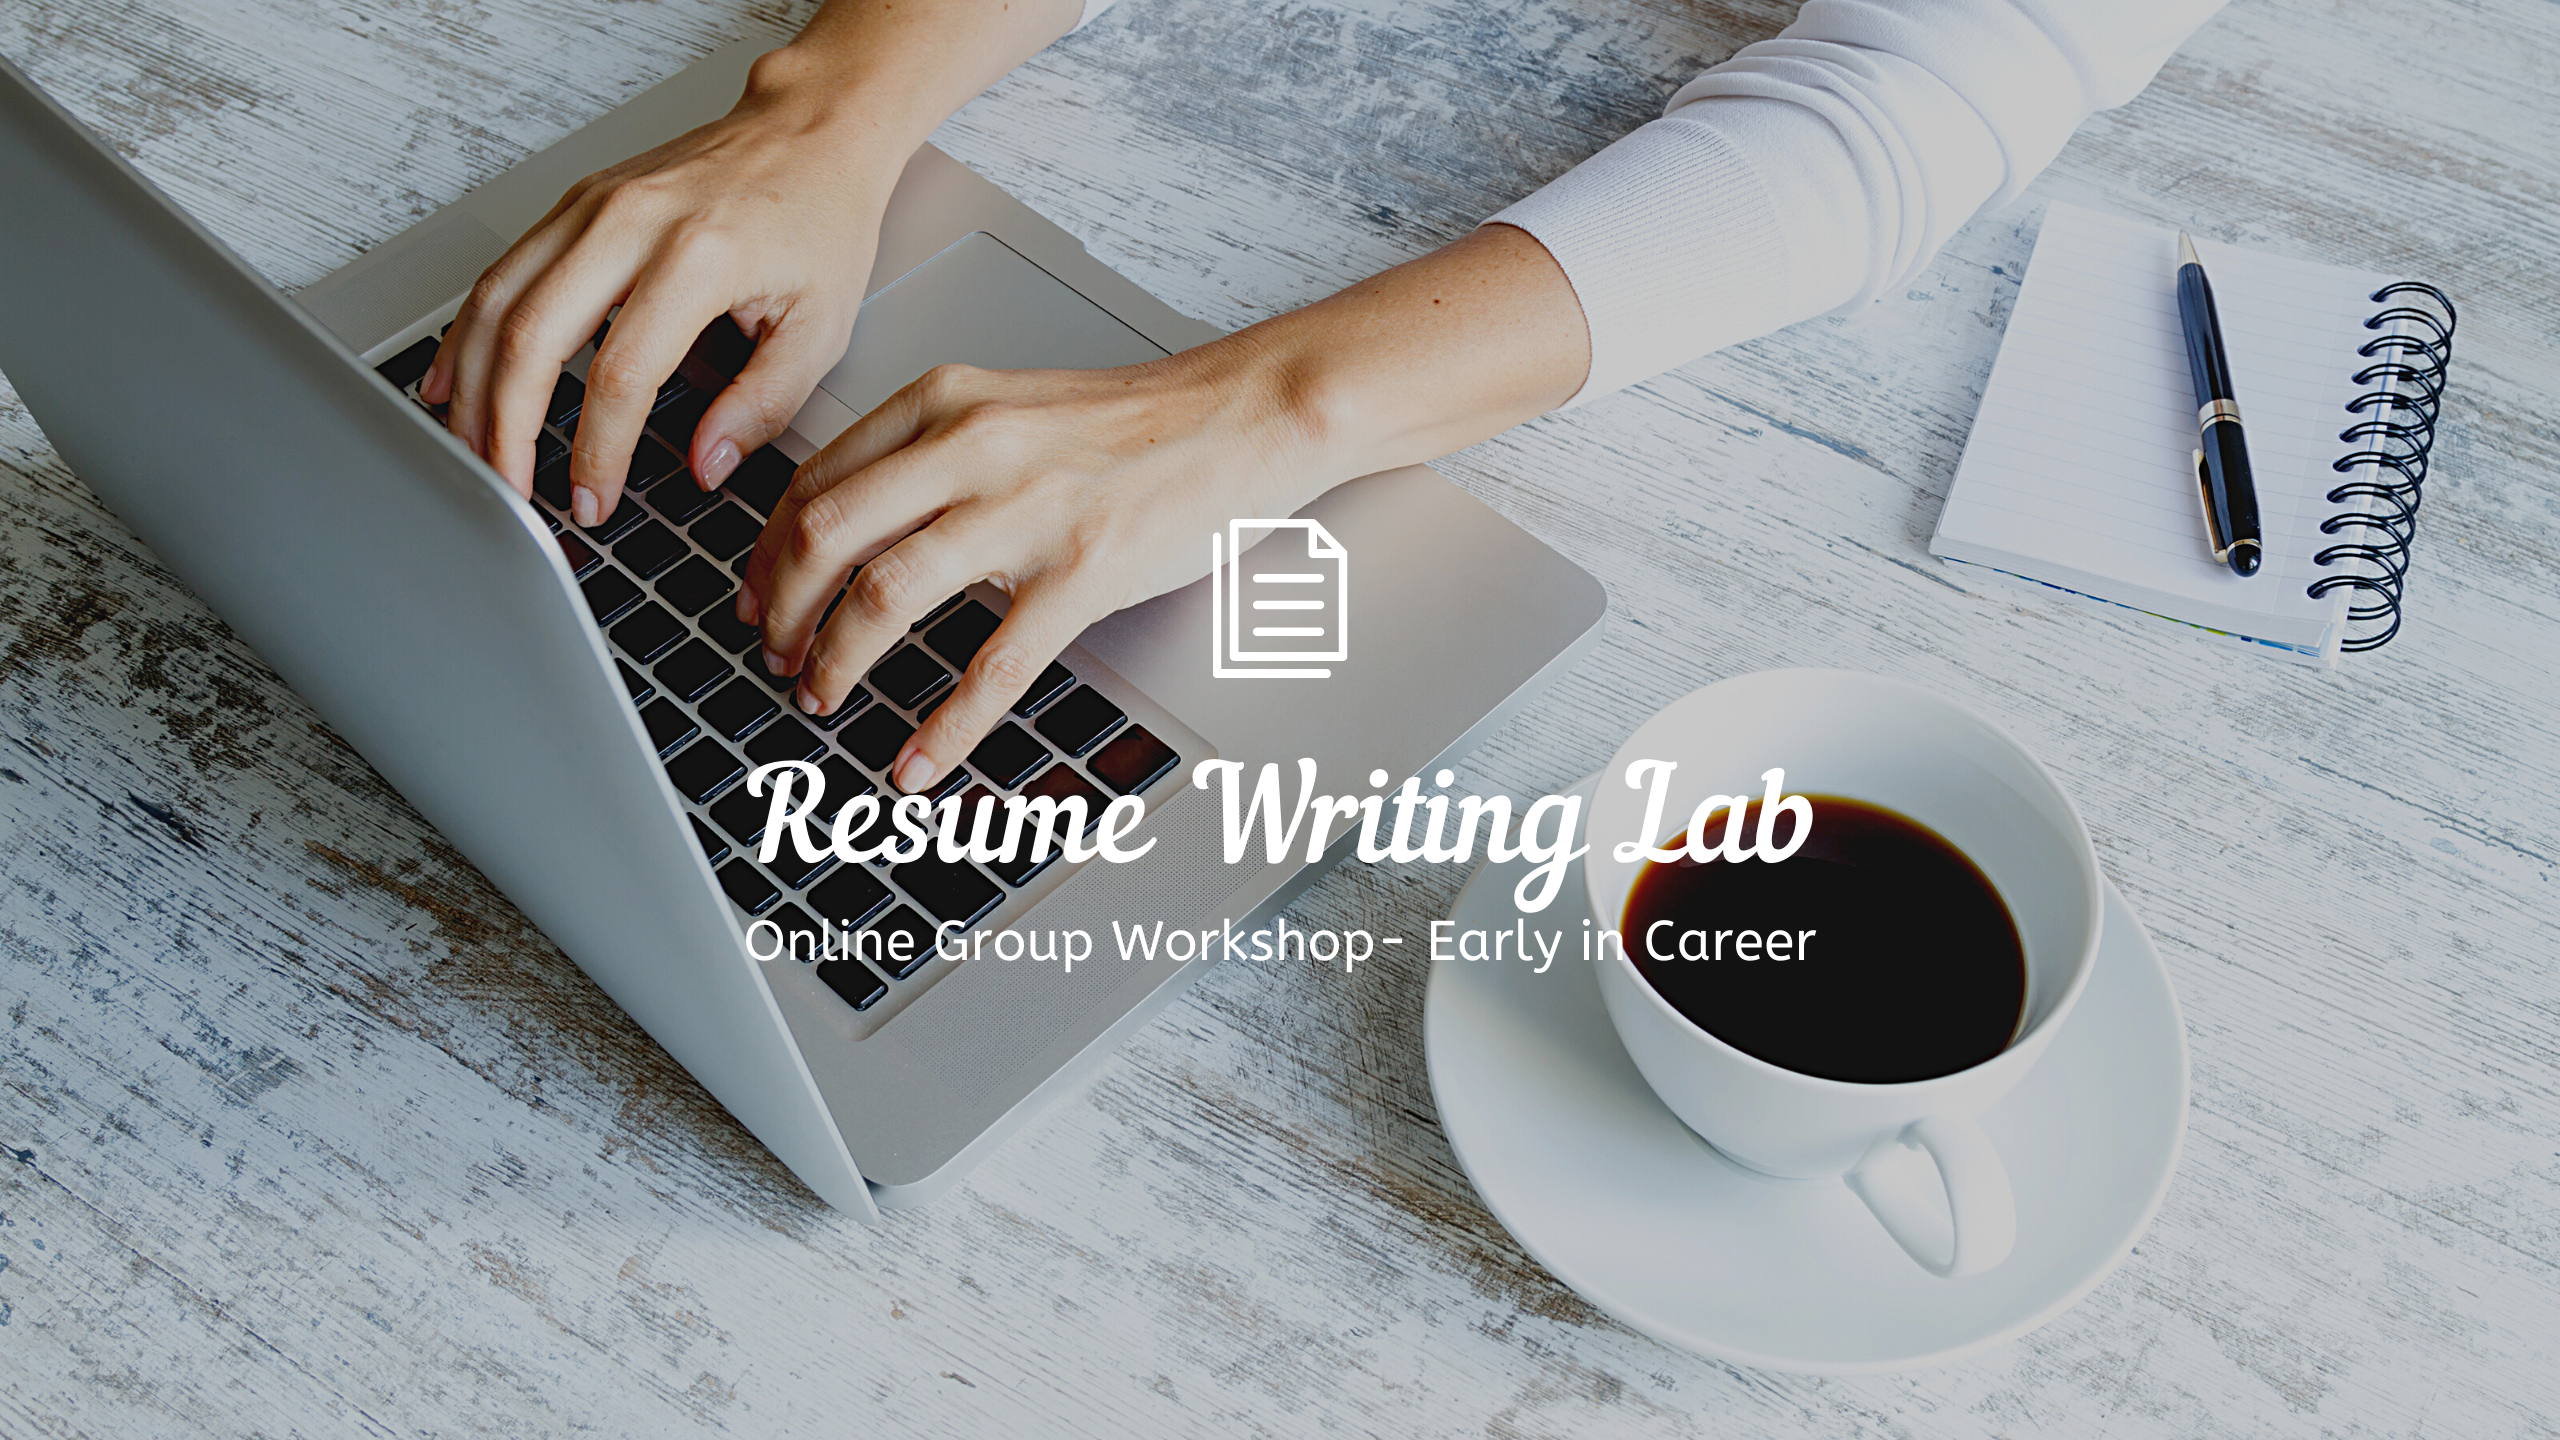 Resume Writing Lab for Early in Career